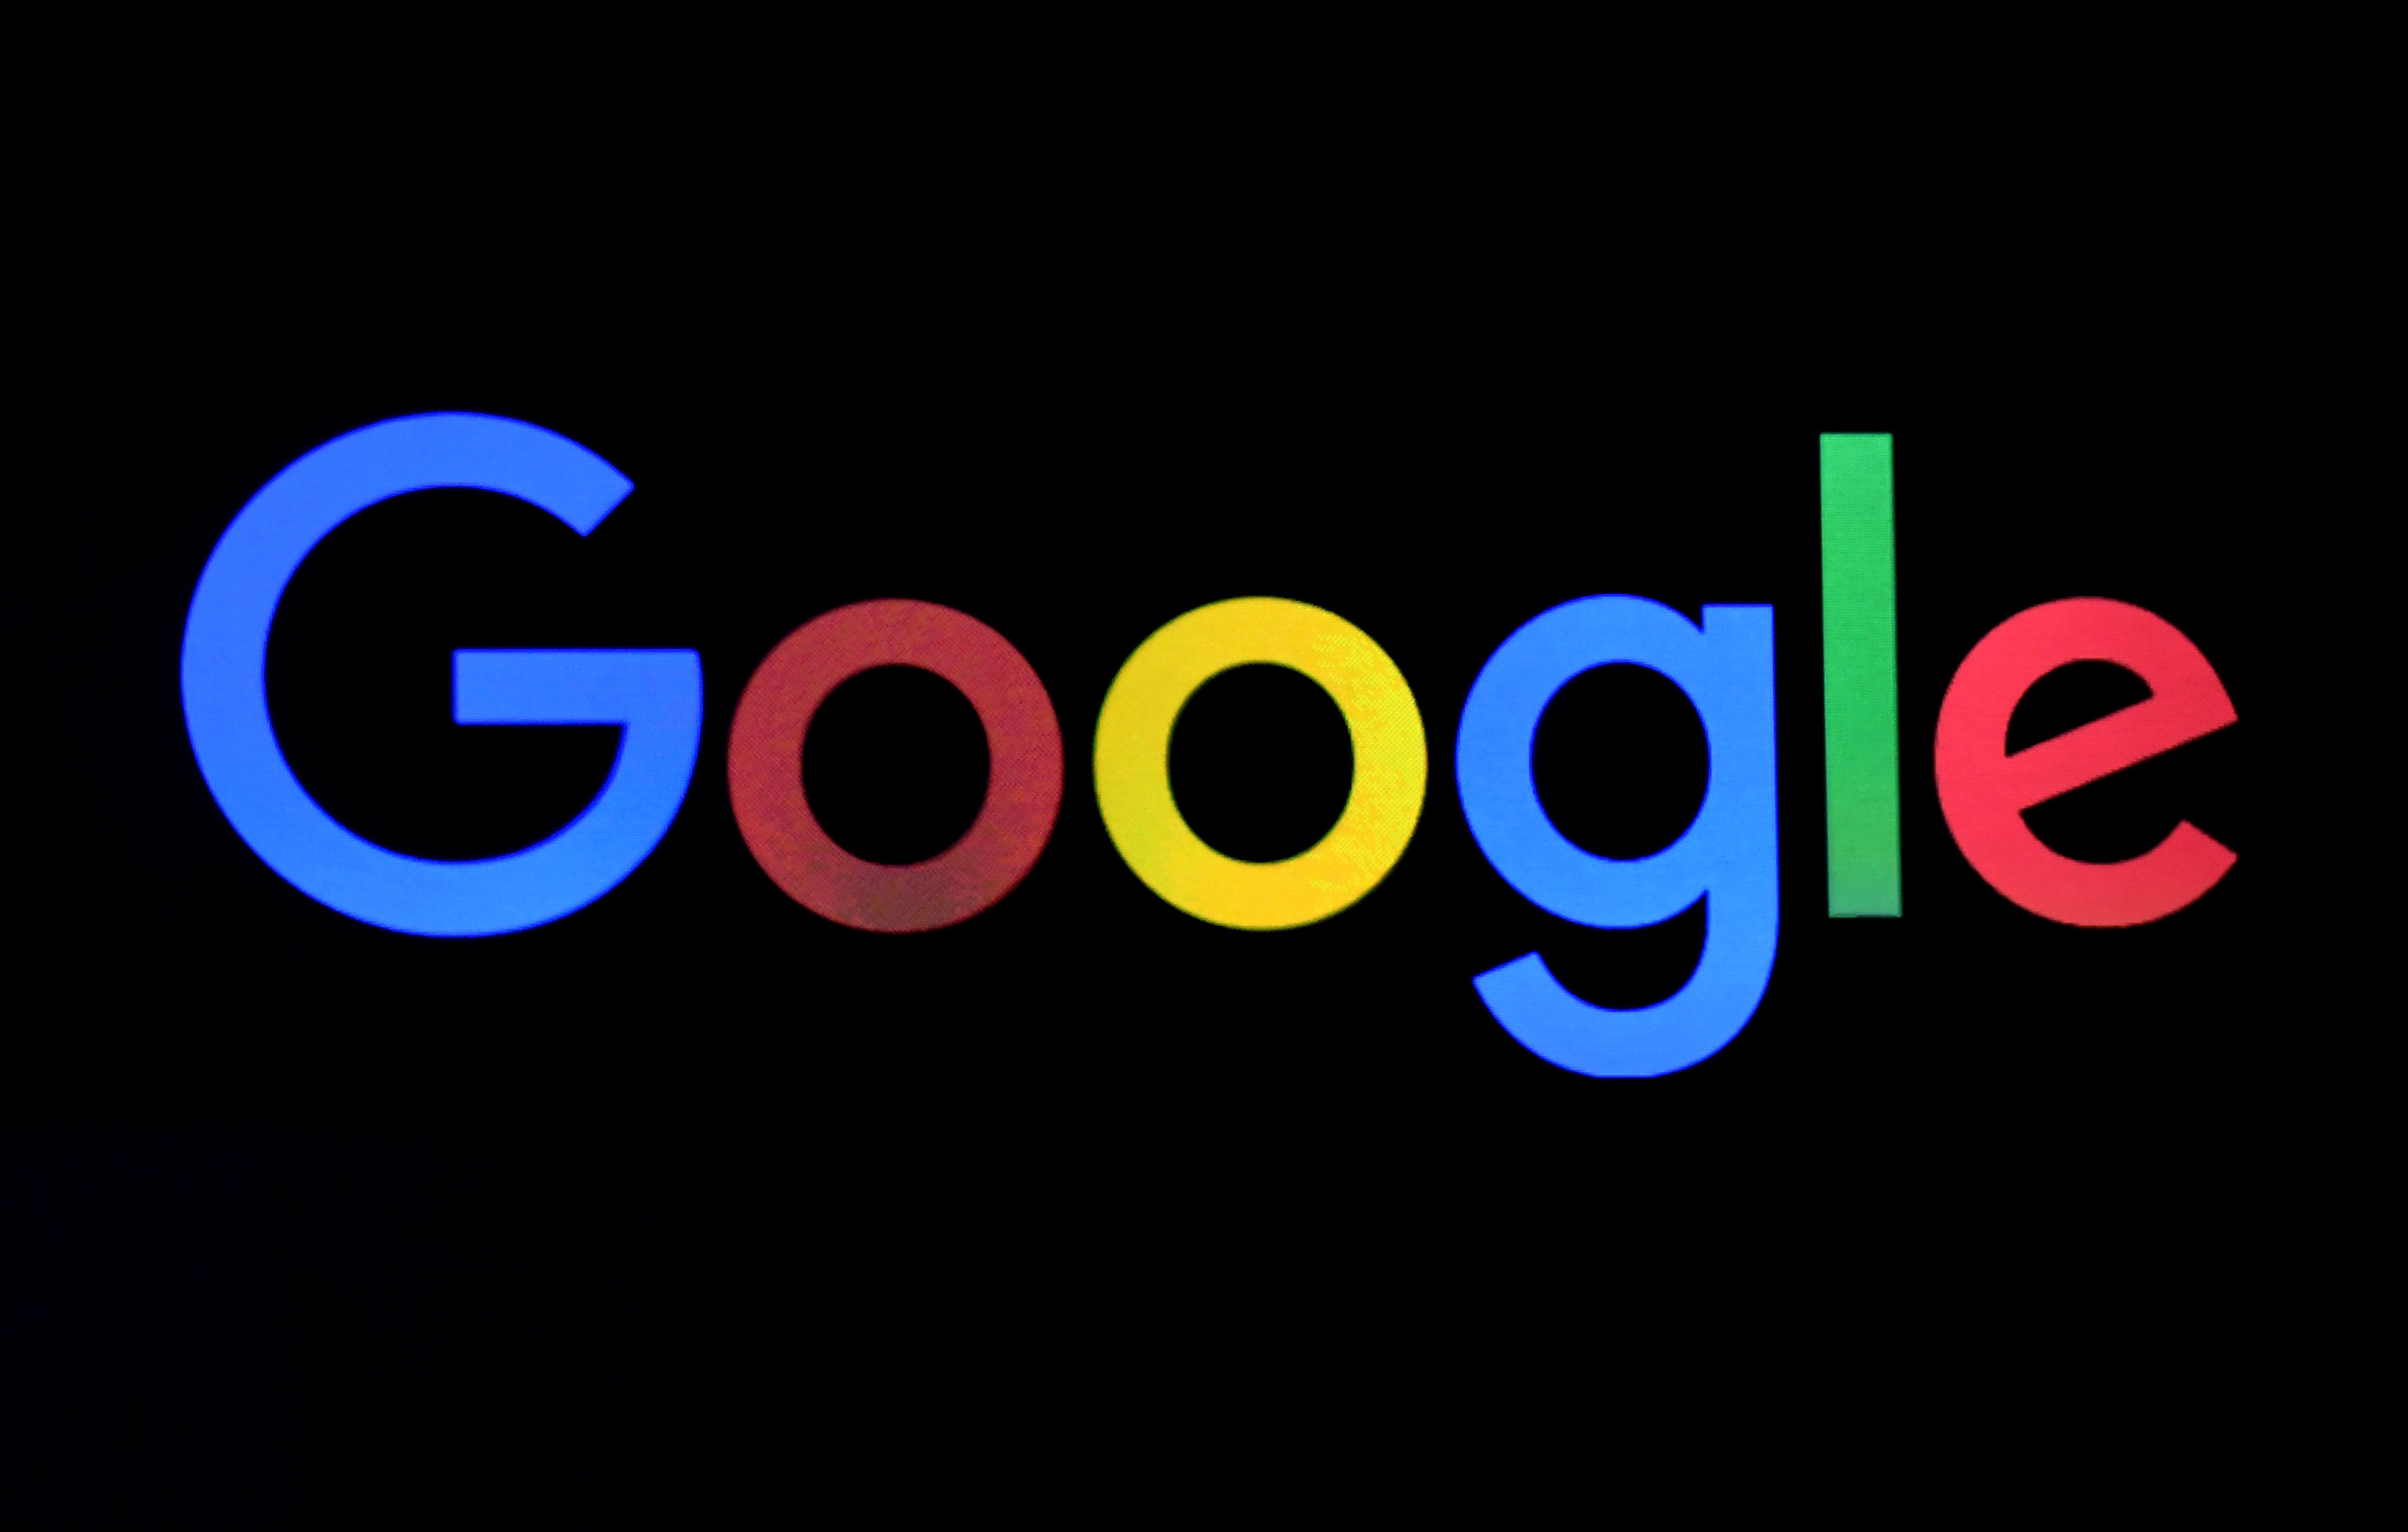 Google to invest Rs 33,737 crore in Jio Platforms